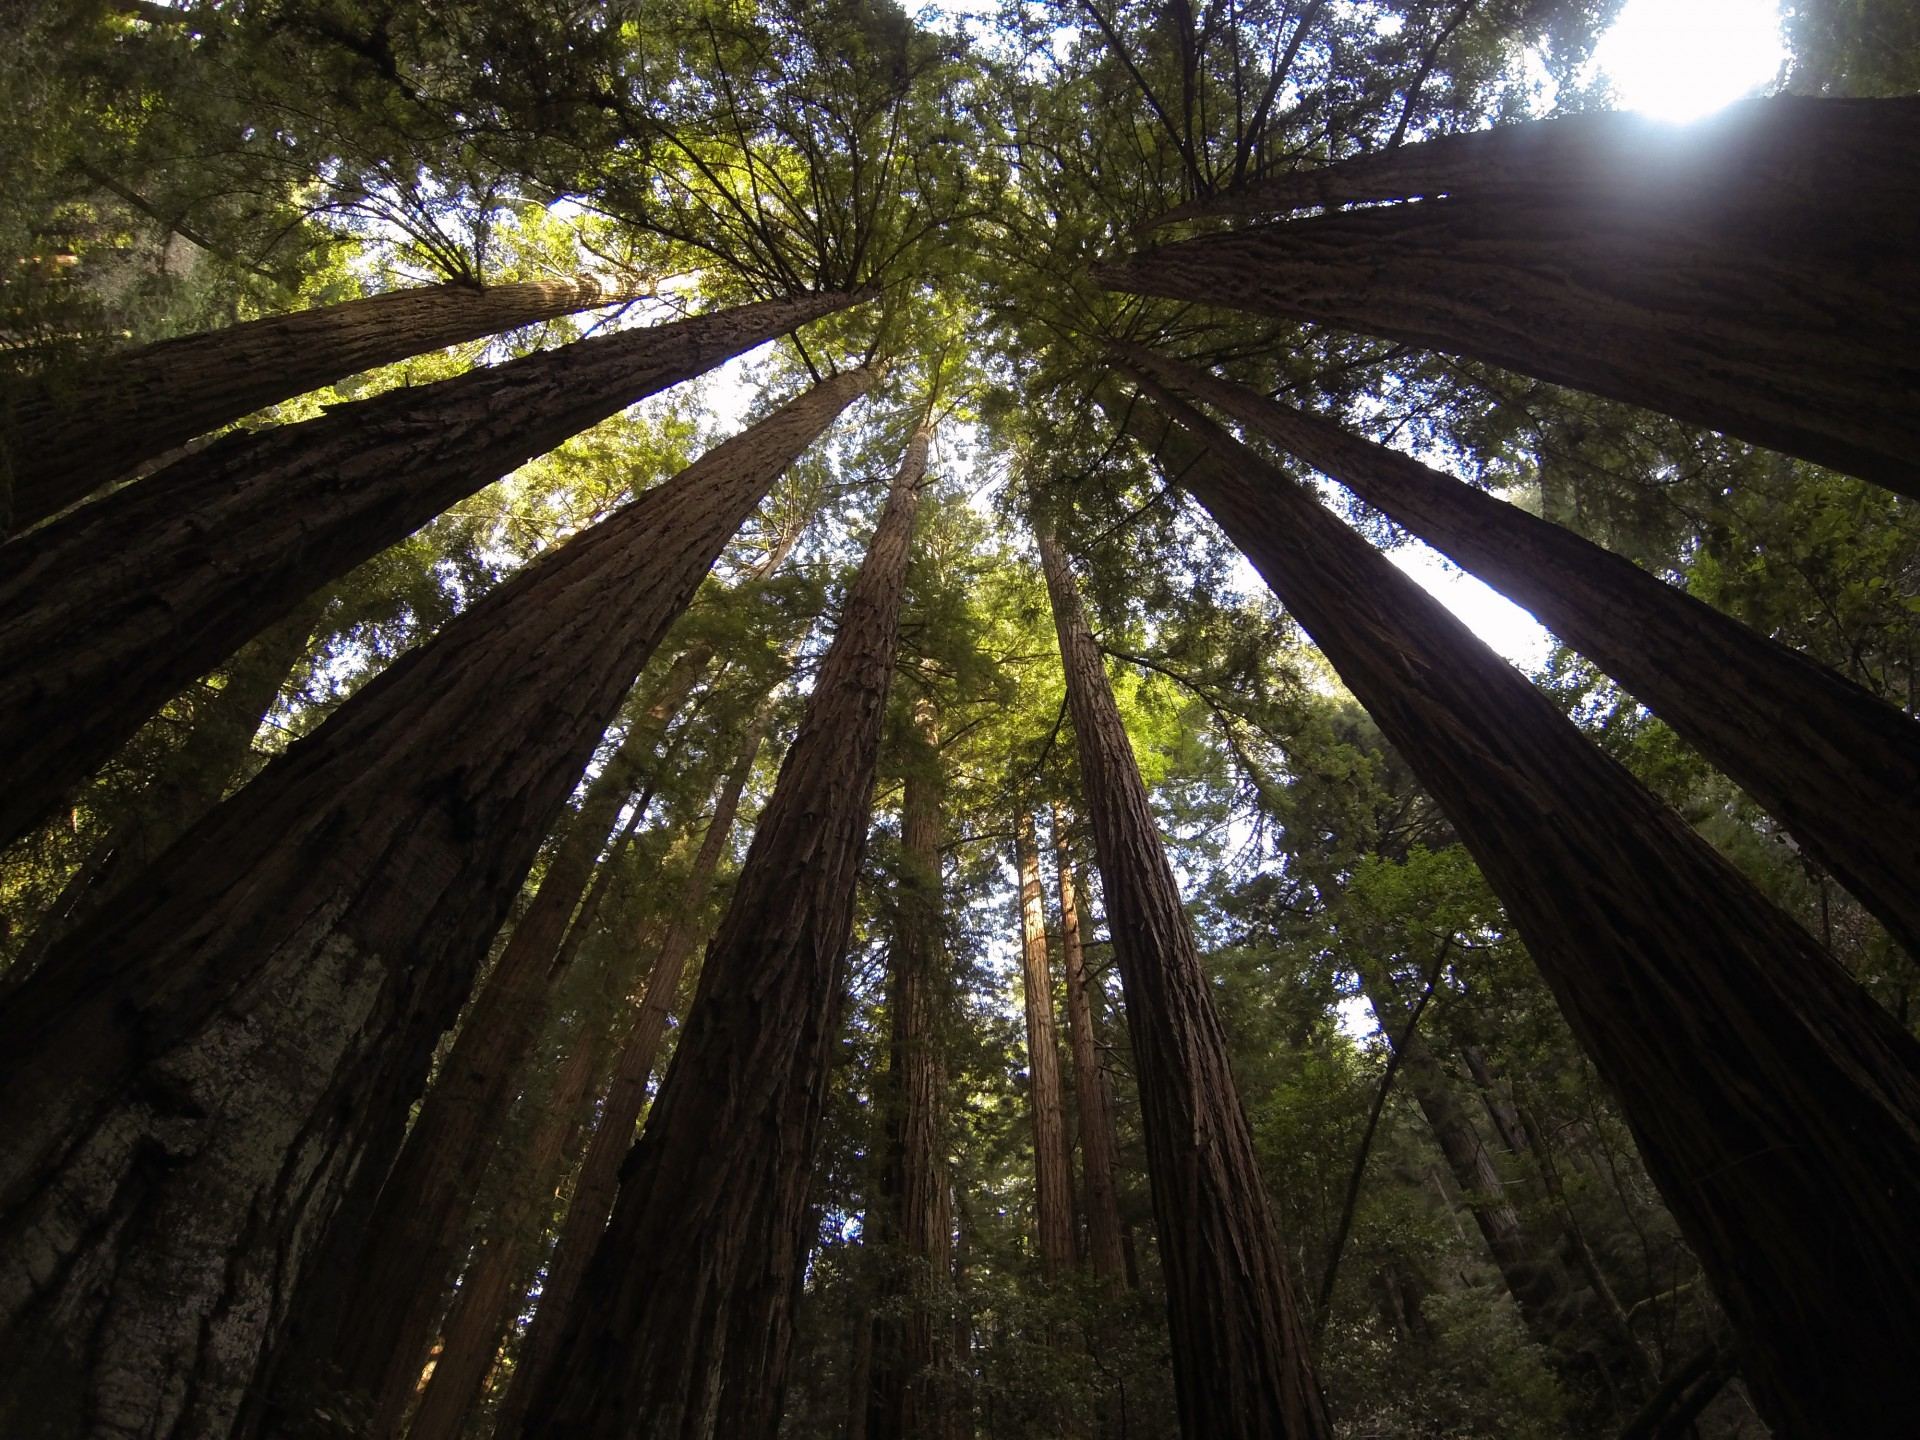 towering trees, forest, woods, trees